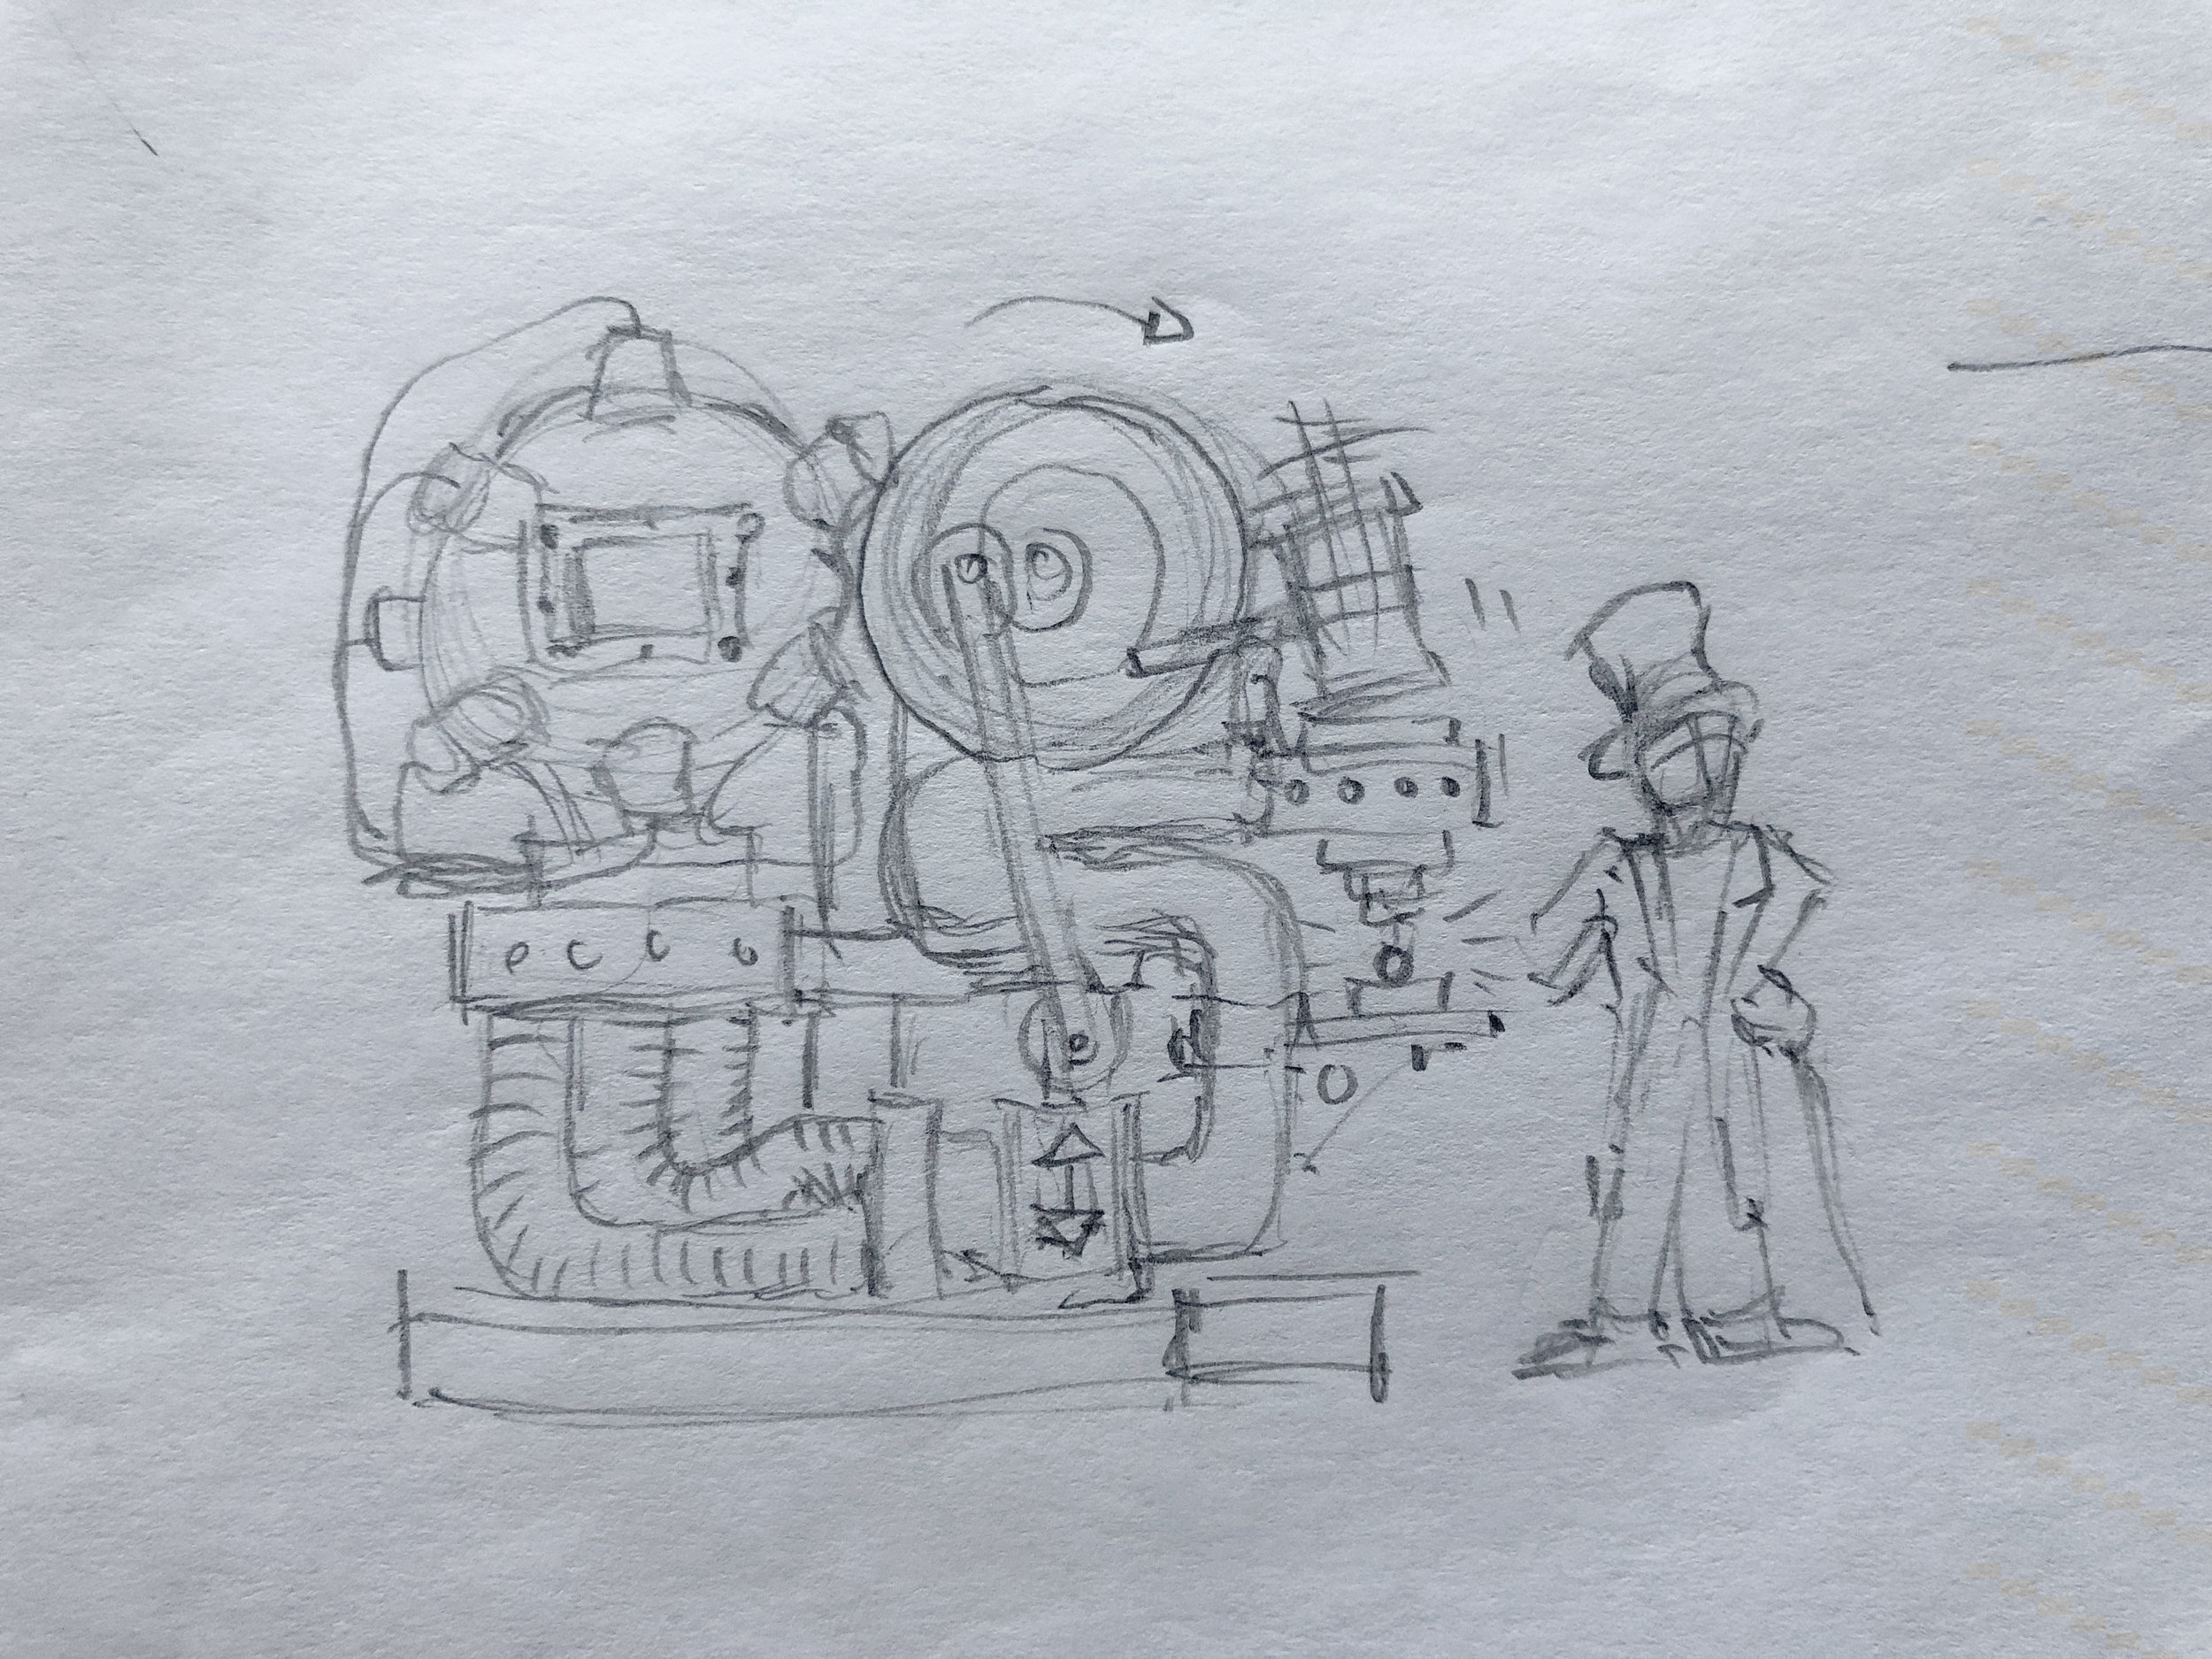 inventing machine sketch.jpg